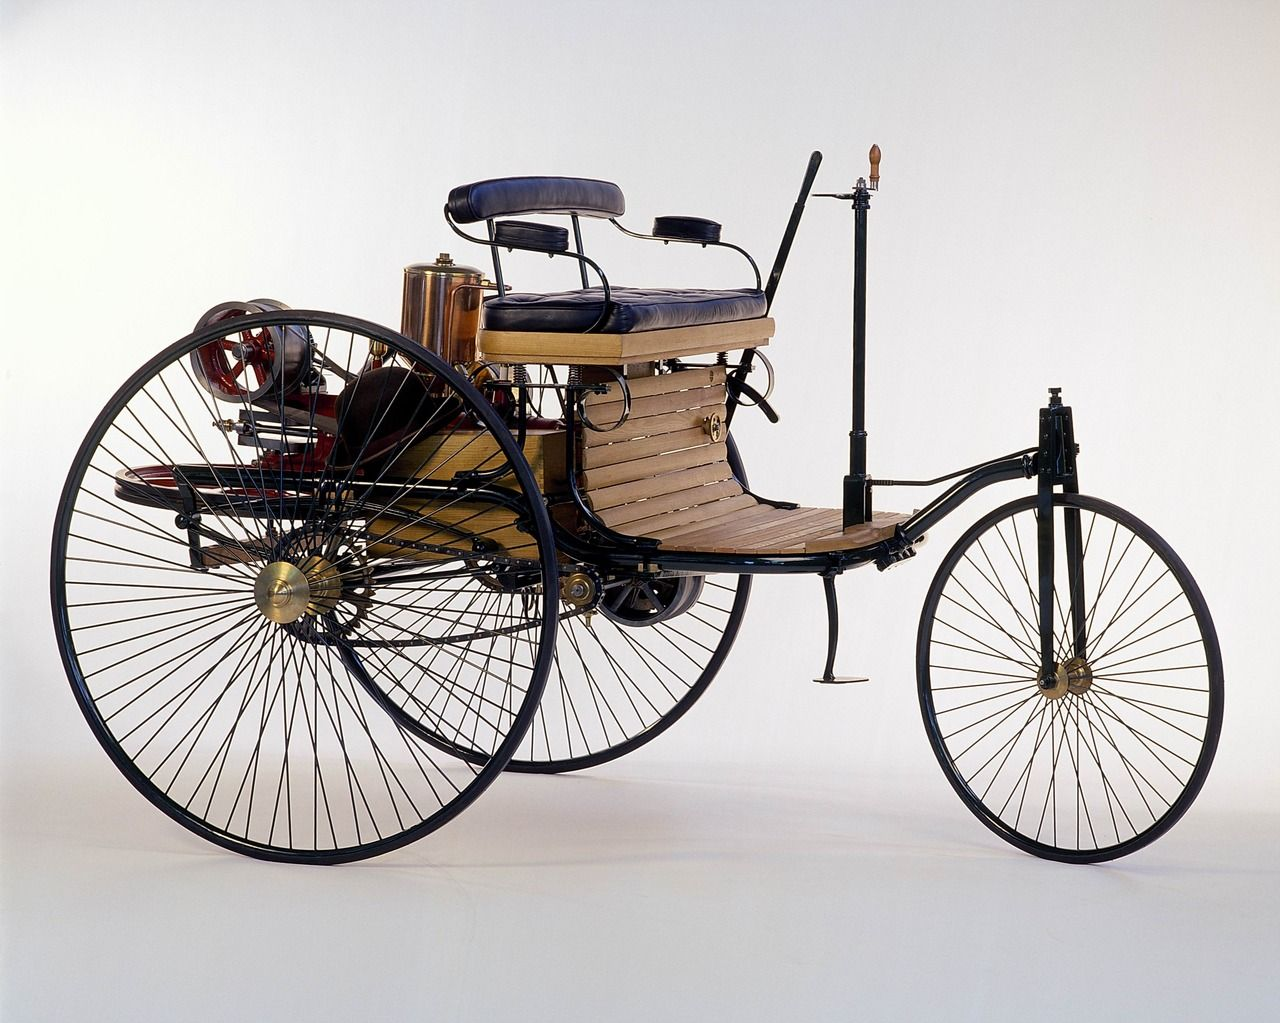 Benz Patent Motor Car The First Automobile 1885 1886 The